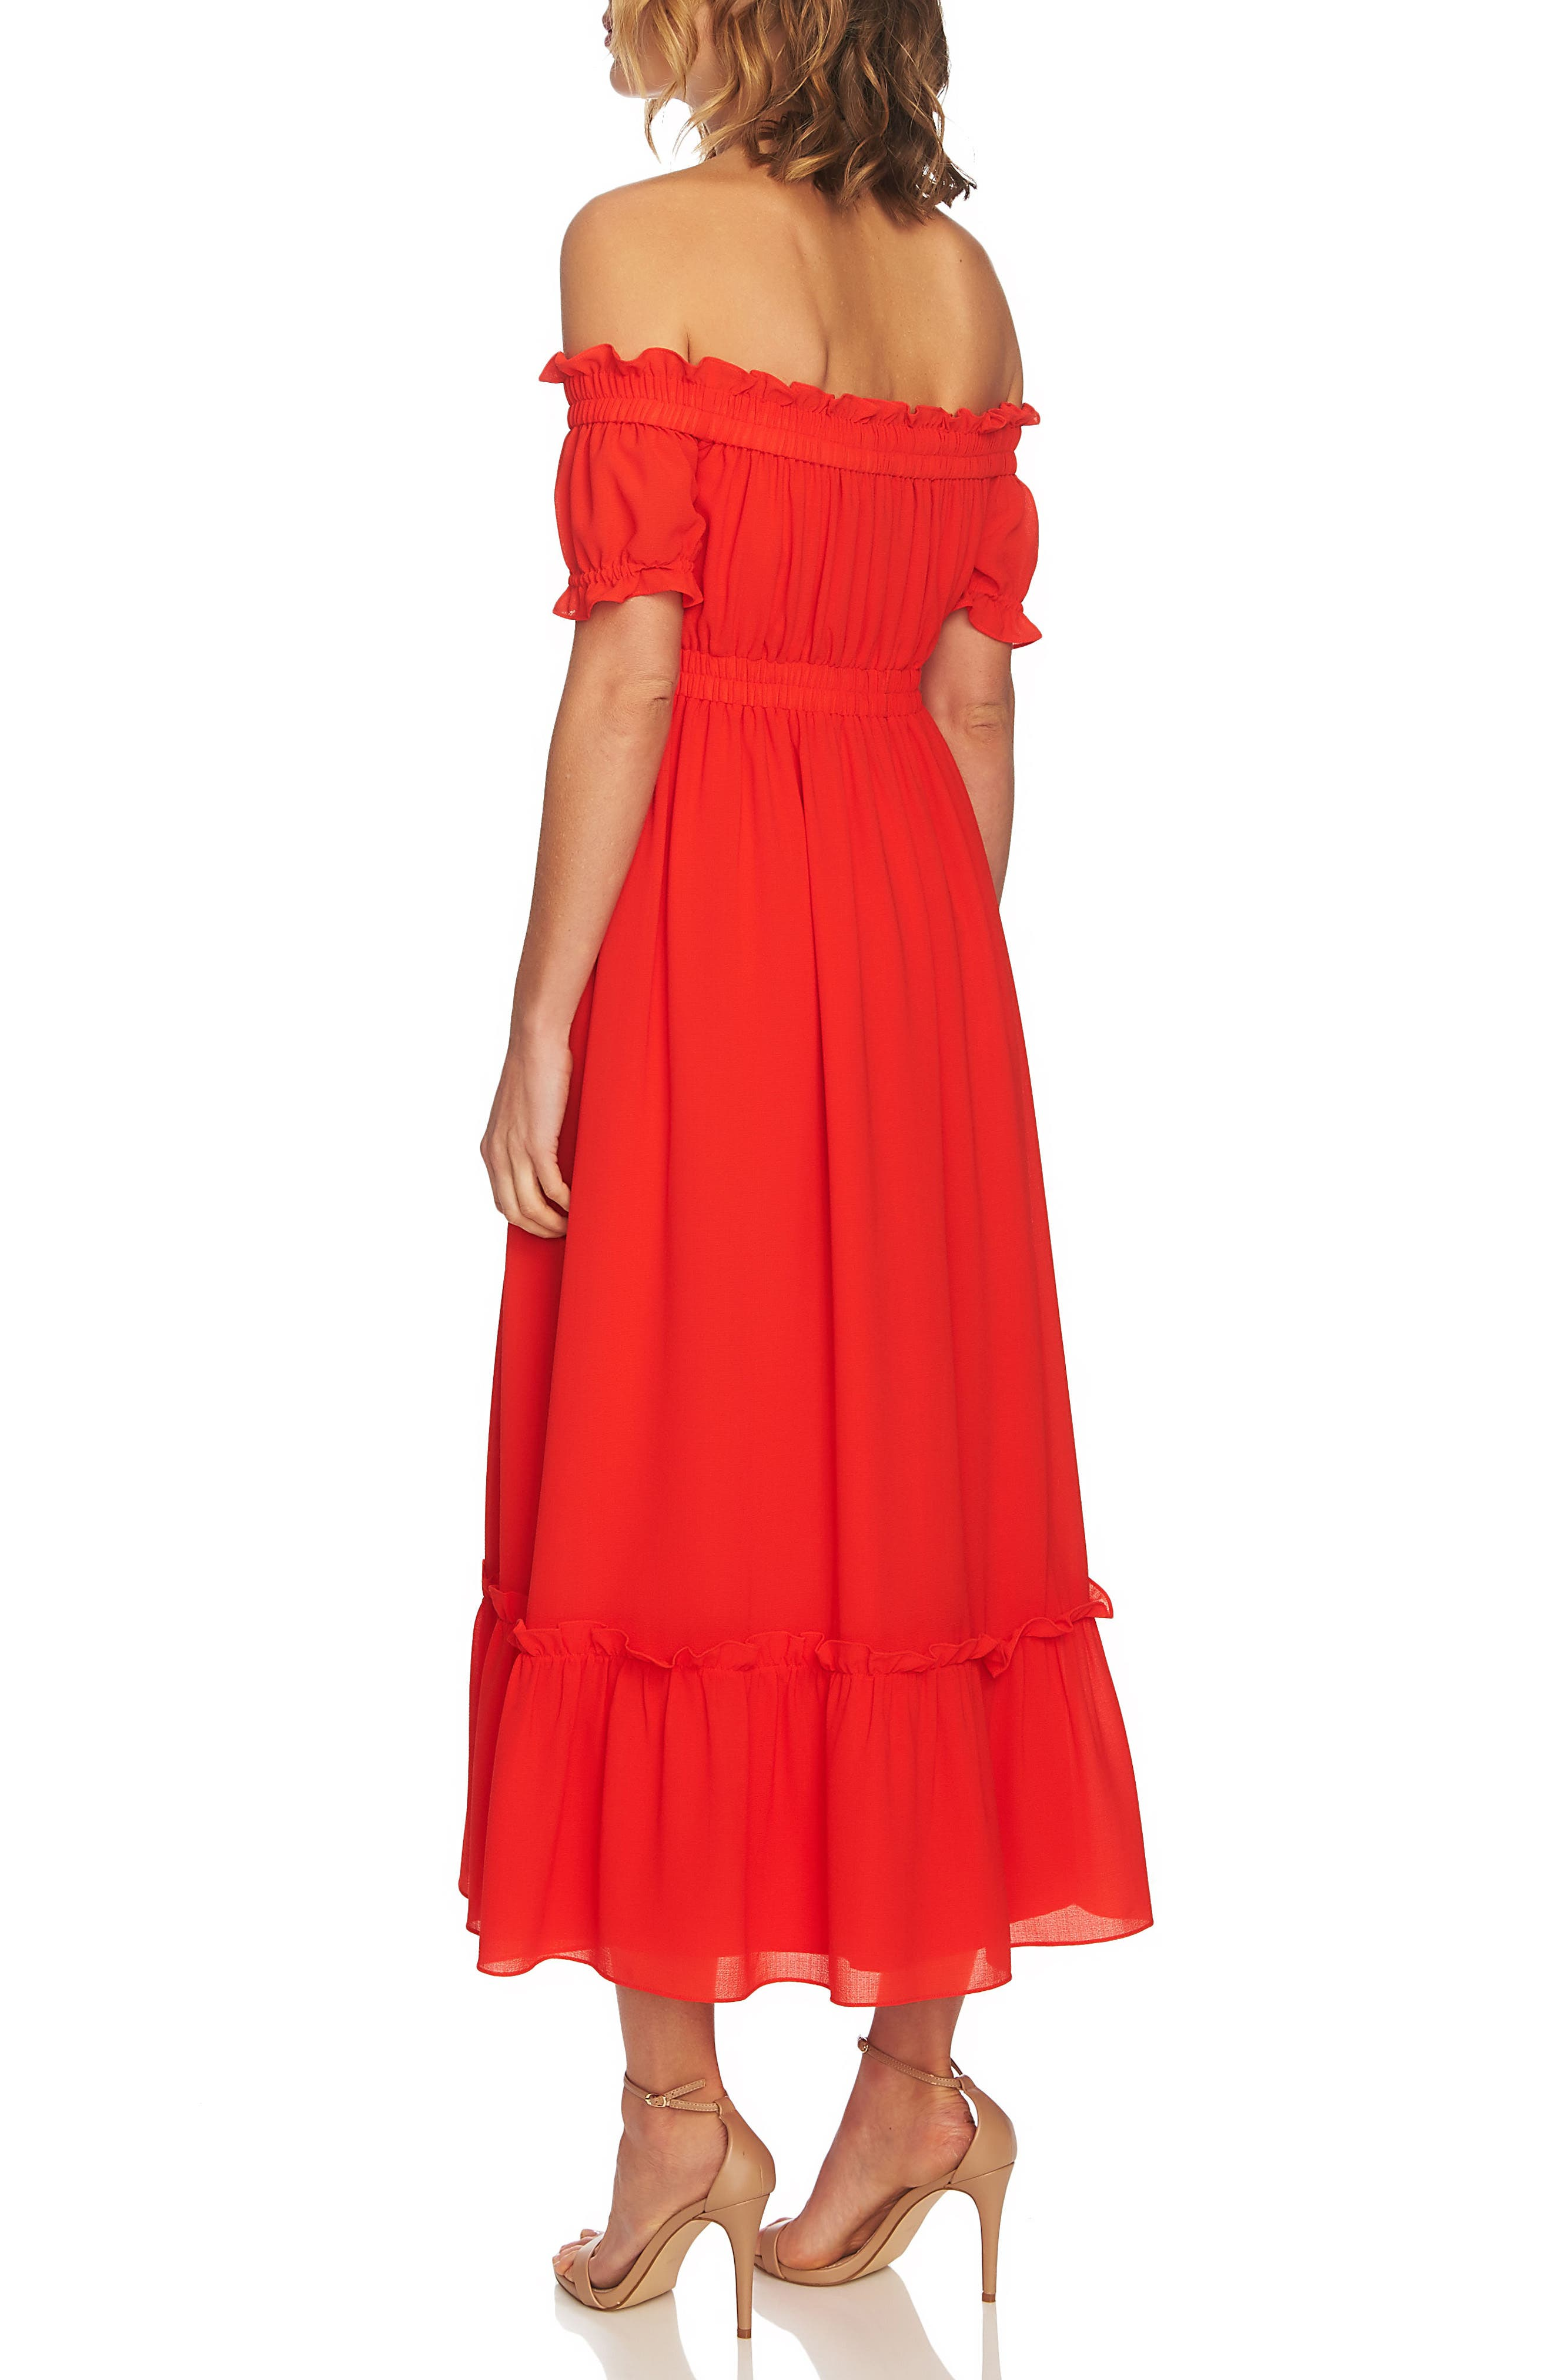 Vivian Off the Shoulder Smocked Maxi Dress,                             Alternate thumbnail 2, color,                             Red Hot